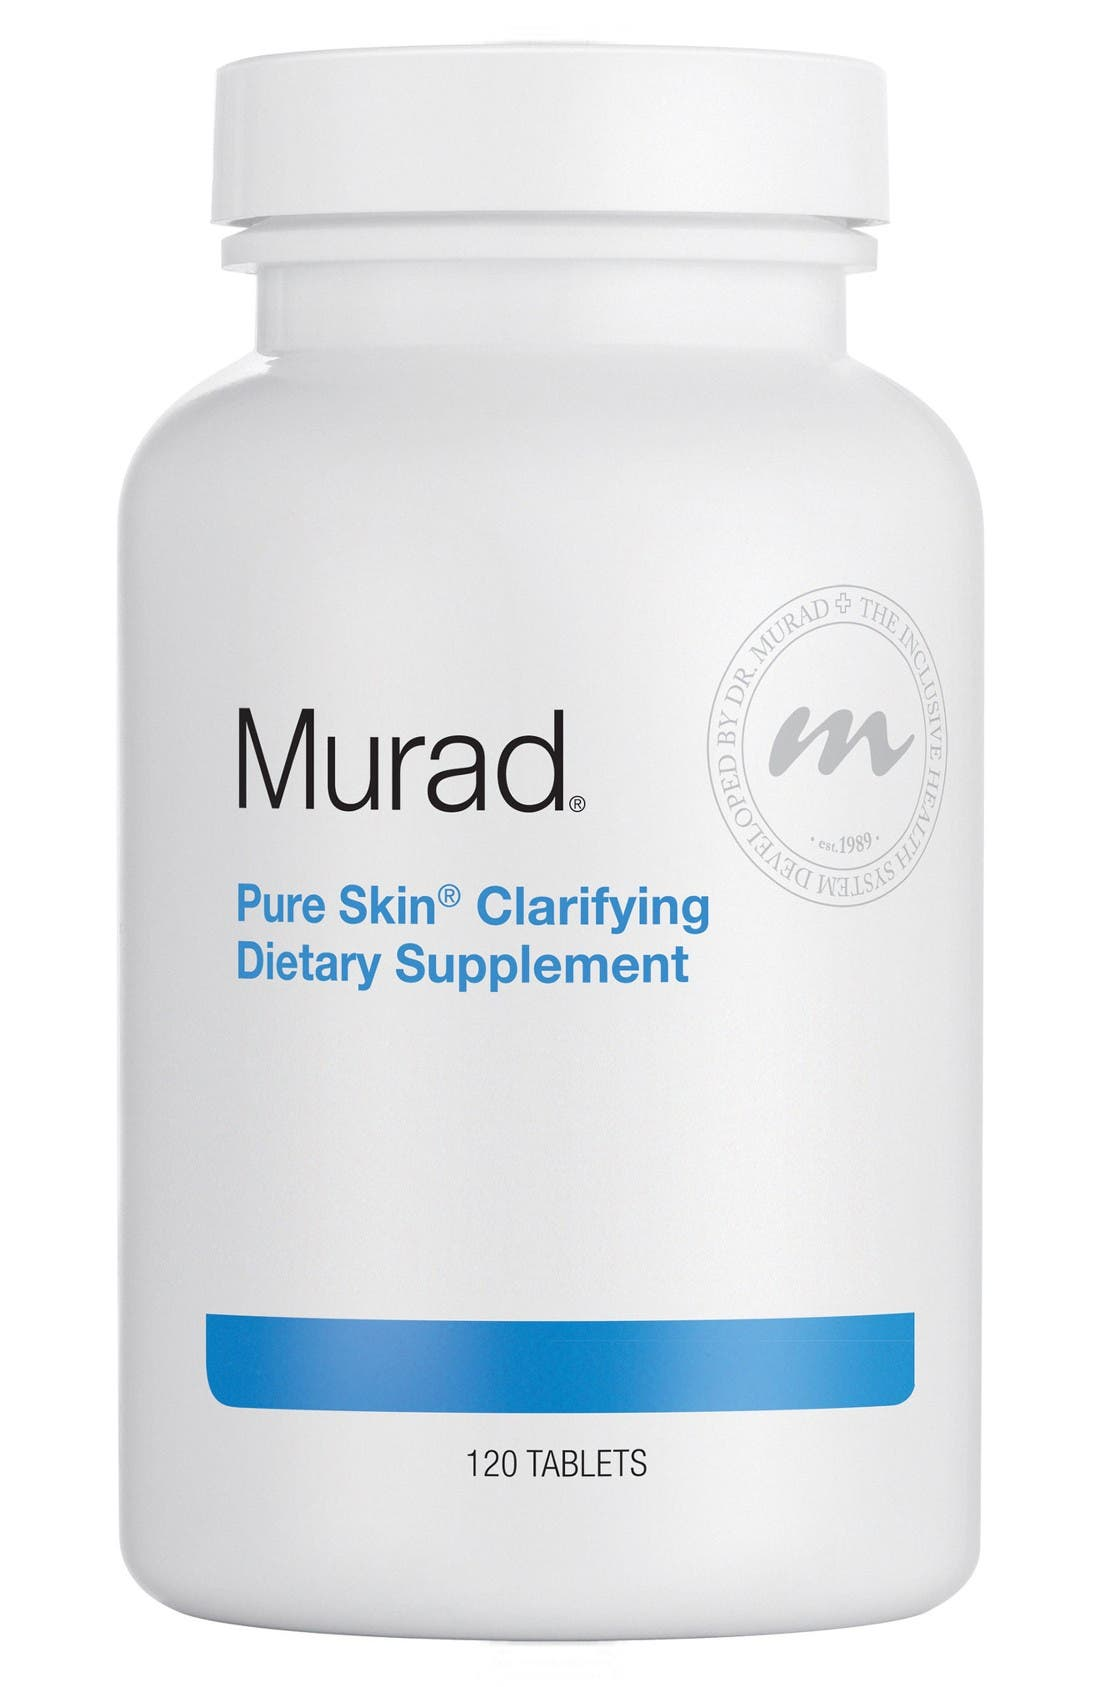 Murad® Pure Skin® Clarifying Dietary Supplement